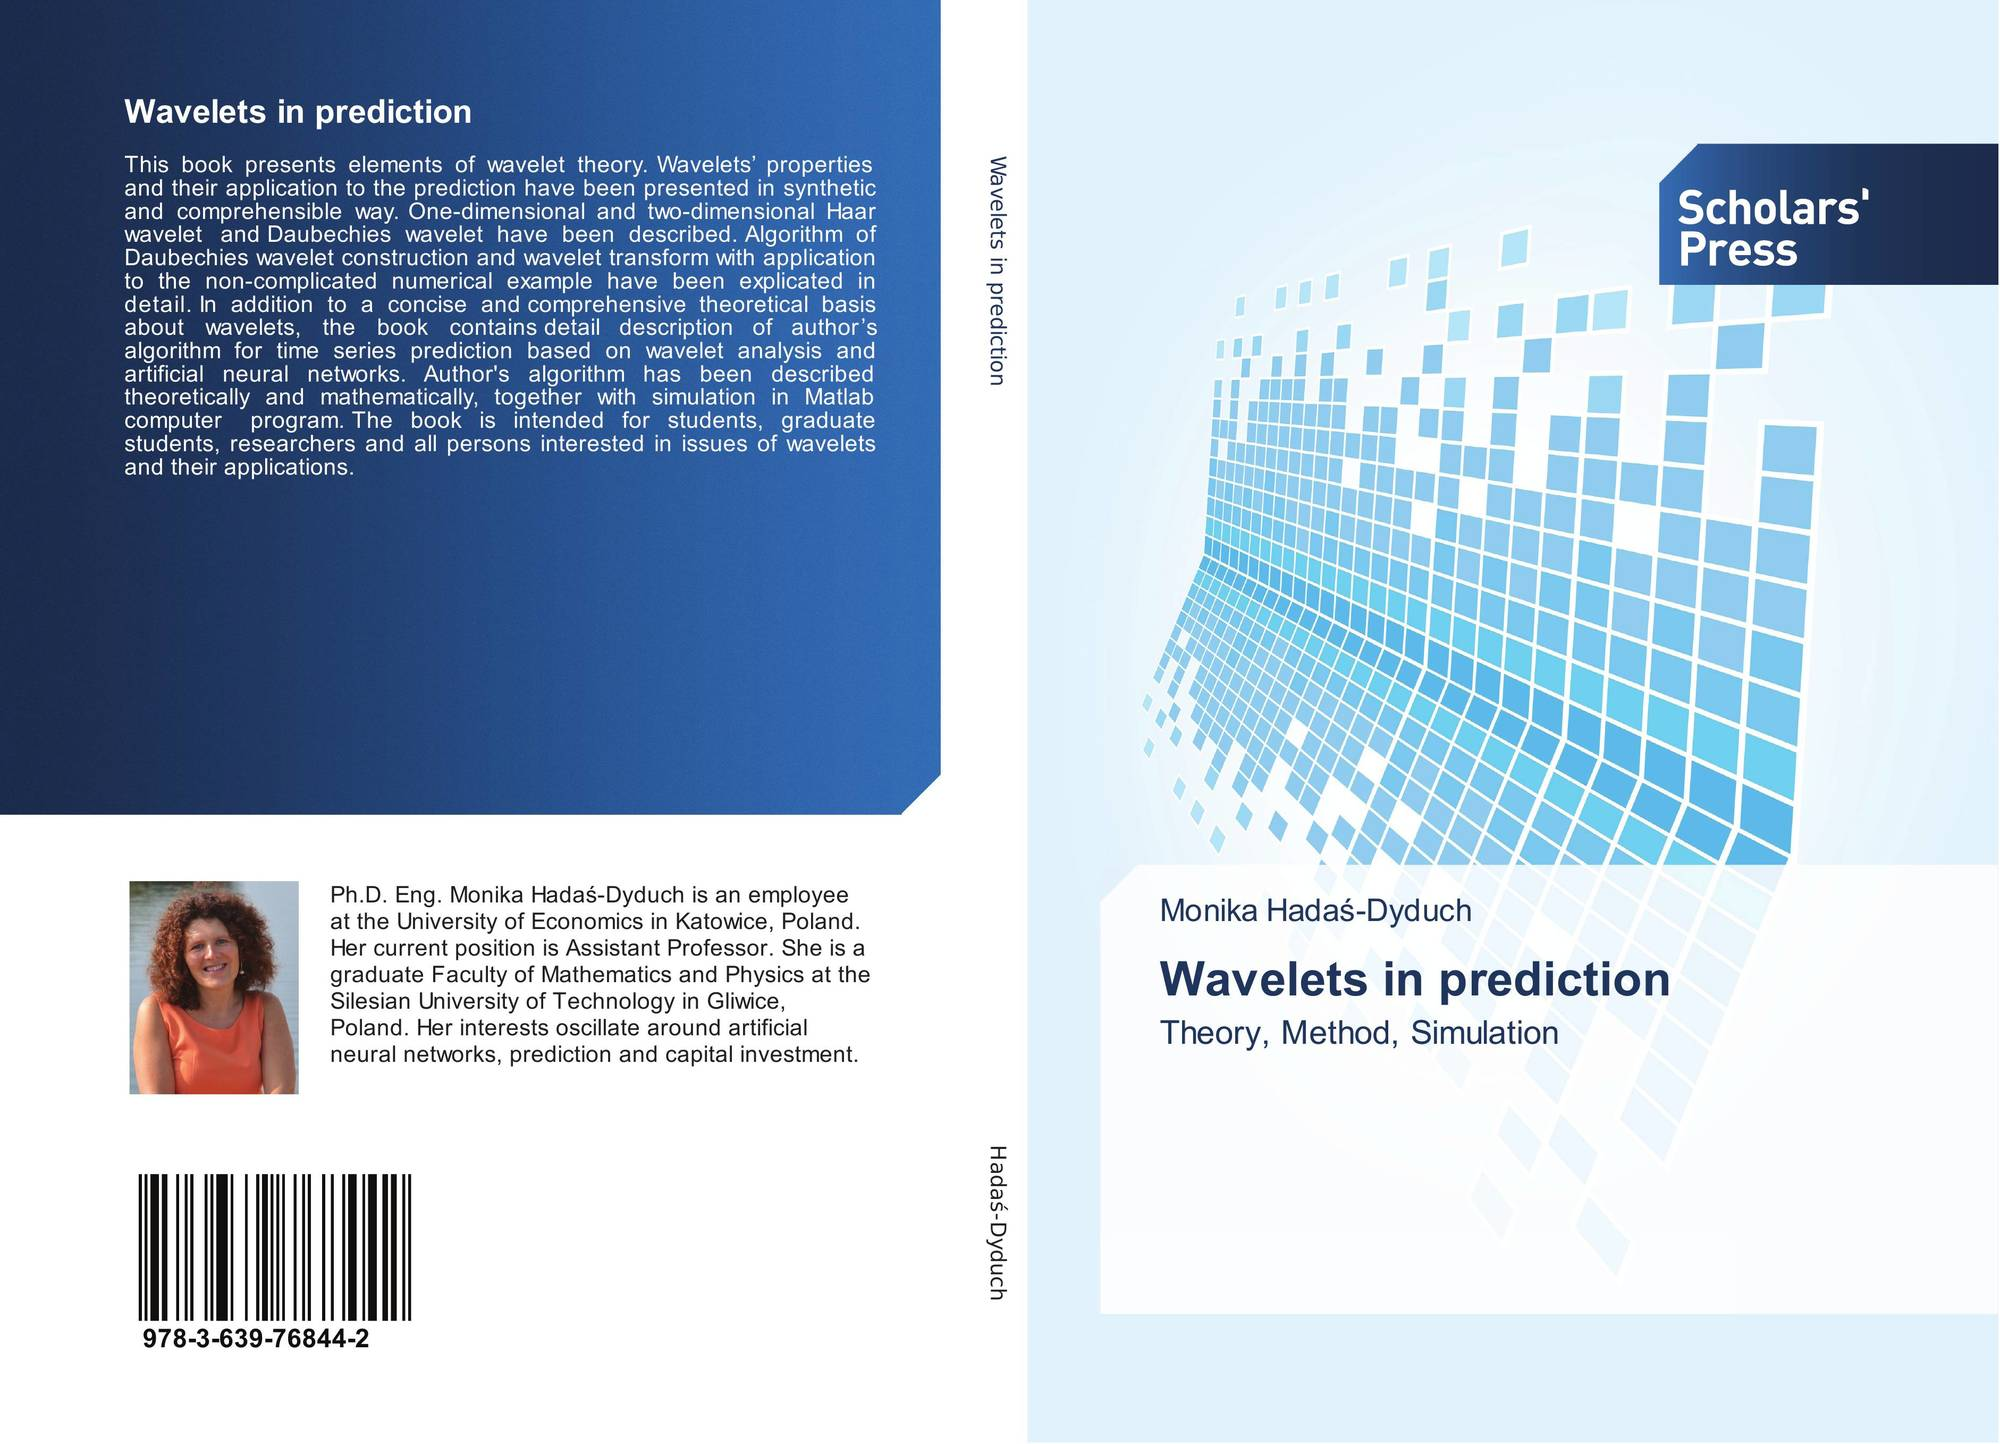 Wavelets in prediction, 978-3-639-76844-2, 3639768442